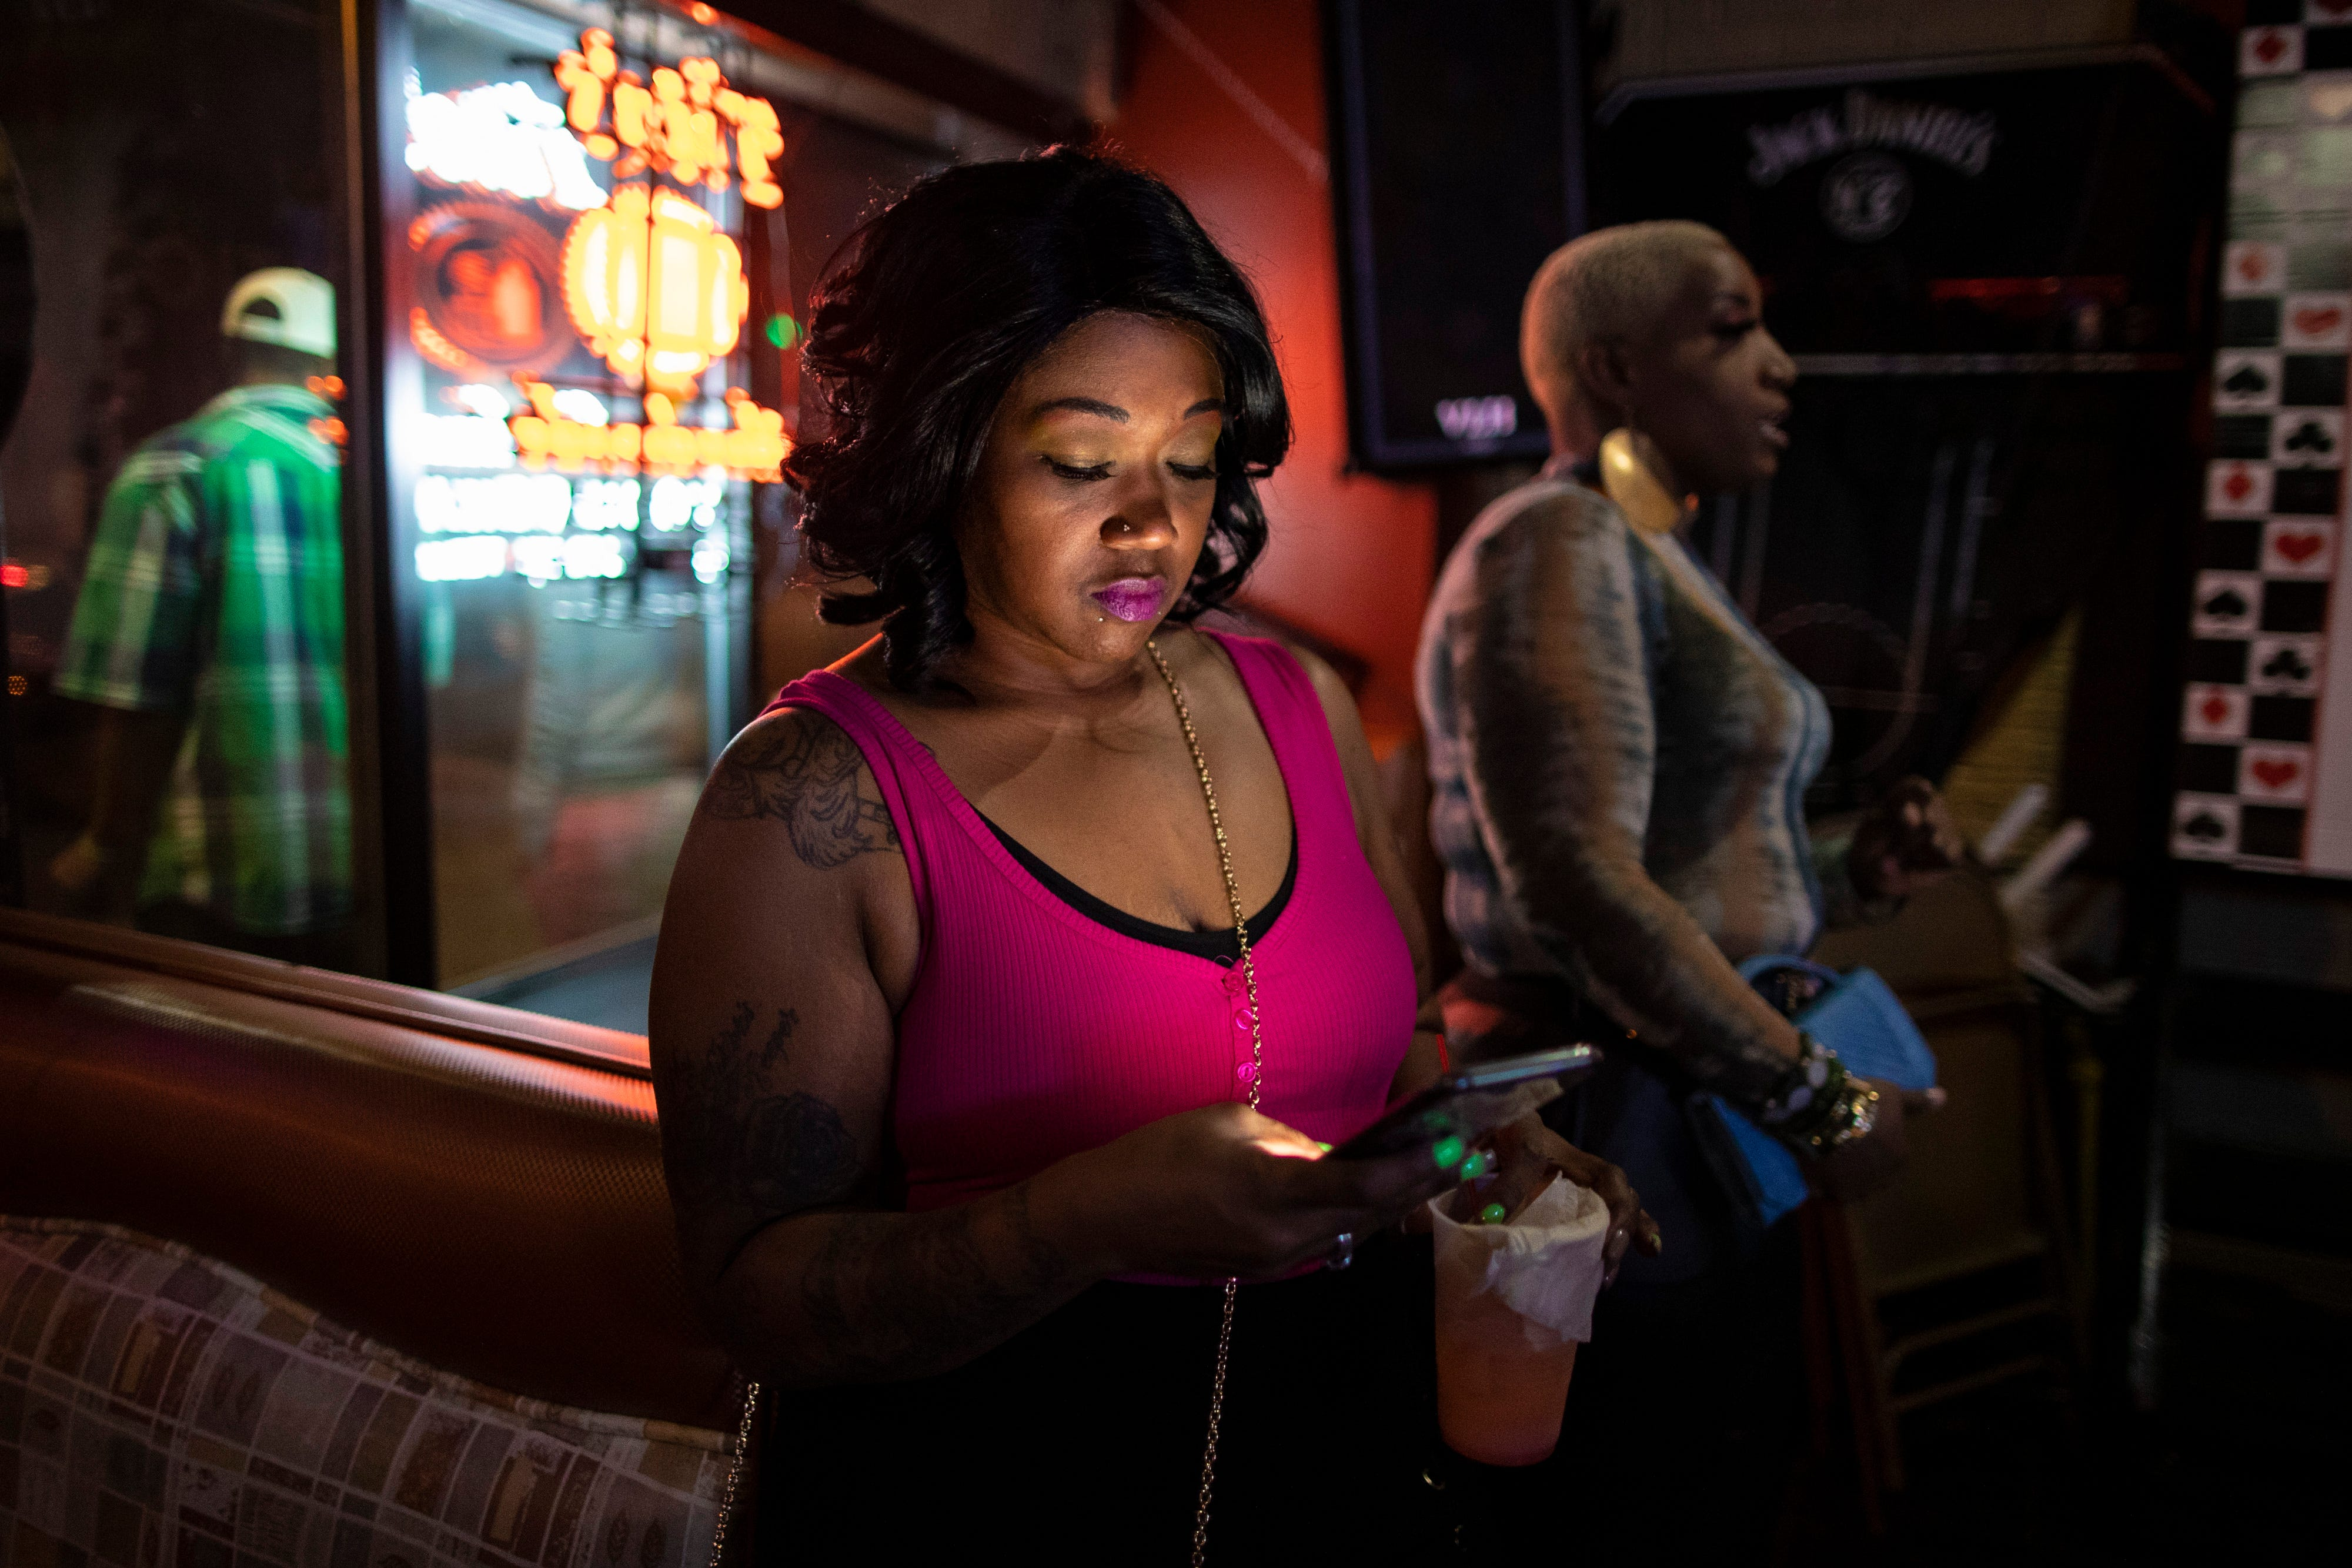 3:03 AMKenyatta Polen, left, scrolls through social media on her phone at Double Deuce's on West Broadway while her friend Chiquita Minor dances to the music on  Jan. 26, 2020. The west end establishment is a popular night spot for late night dancing on the weekends.